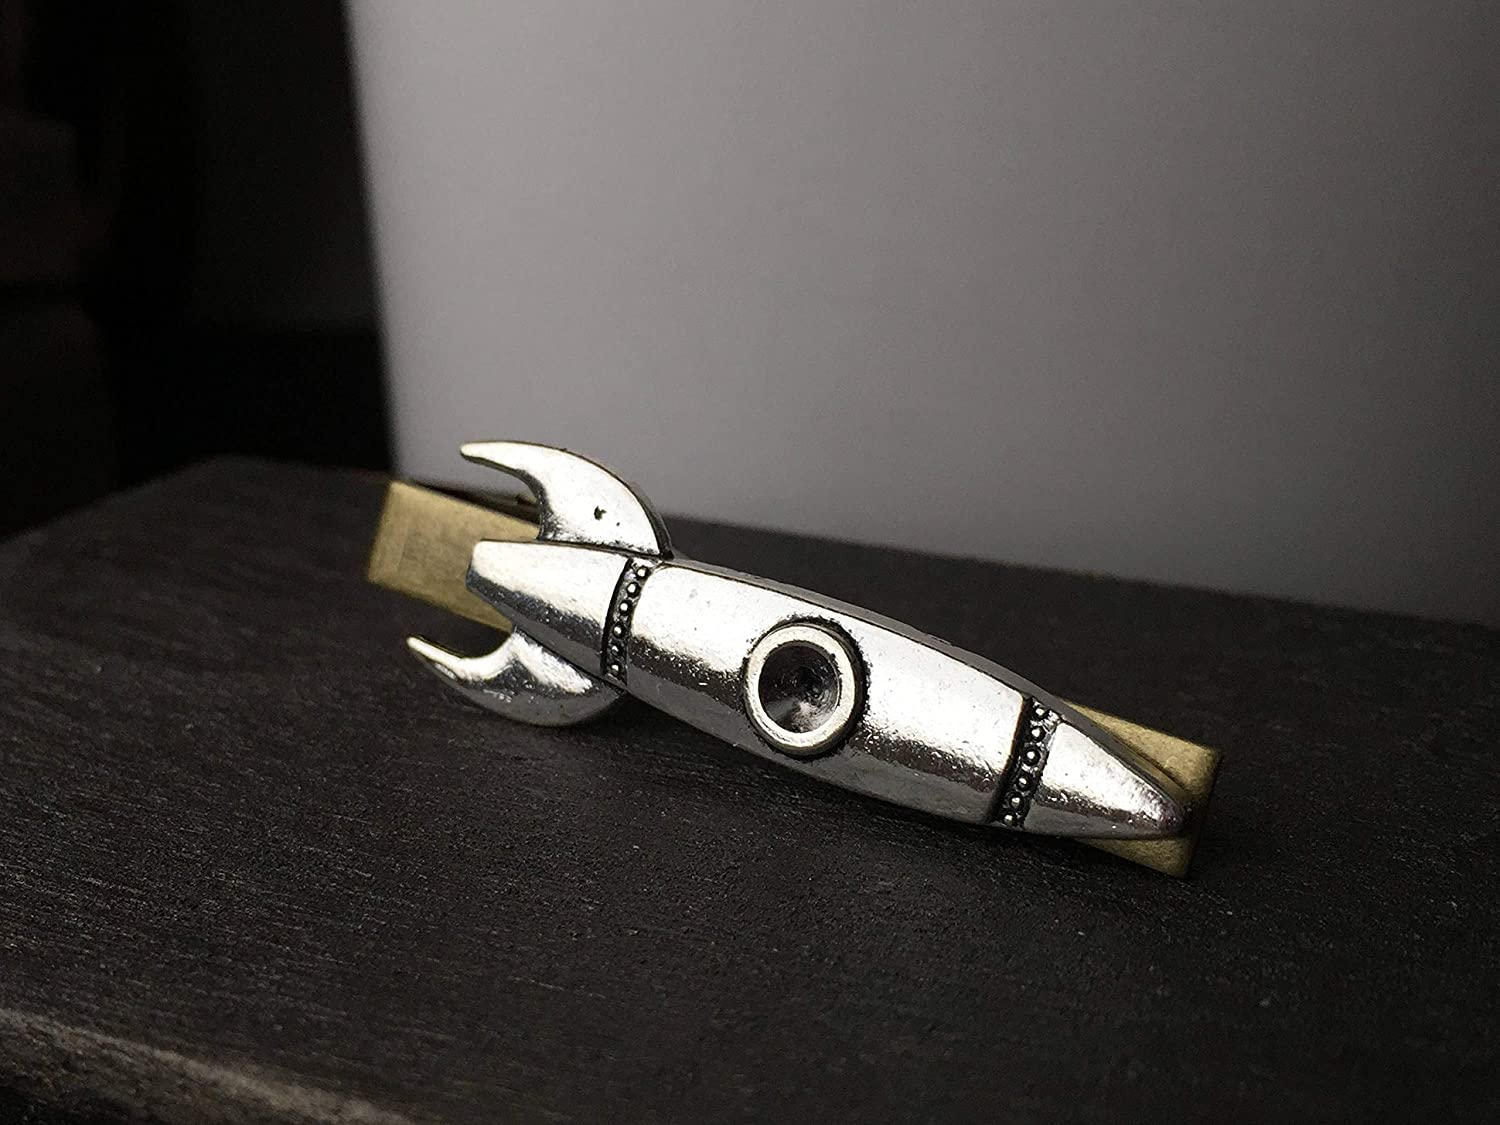 Silver Rocket Tie Clip by Arcanum By Aerrowae - Tie Bar Gifts for Silver Tie Clip Space Gift for Dad